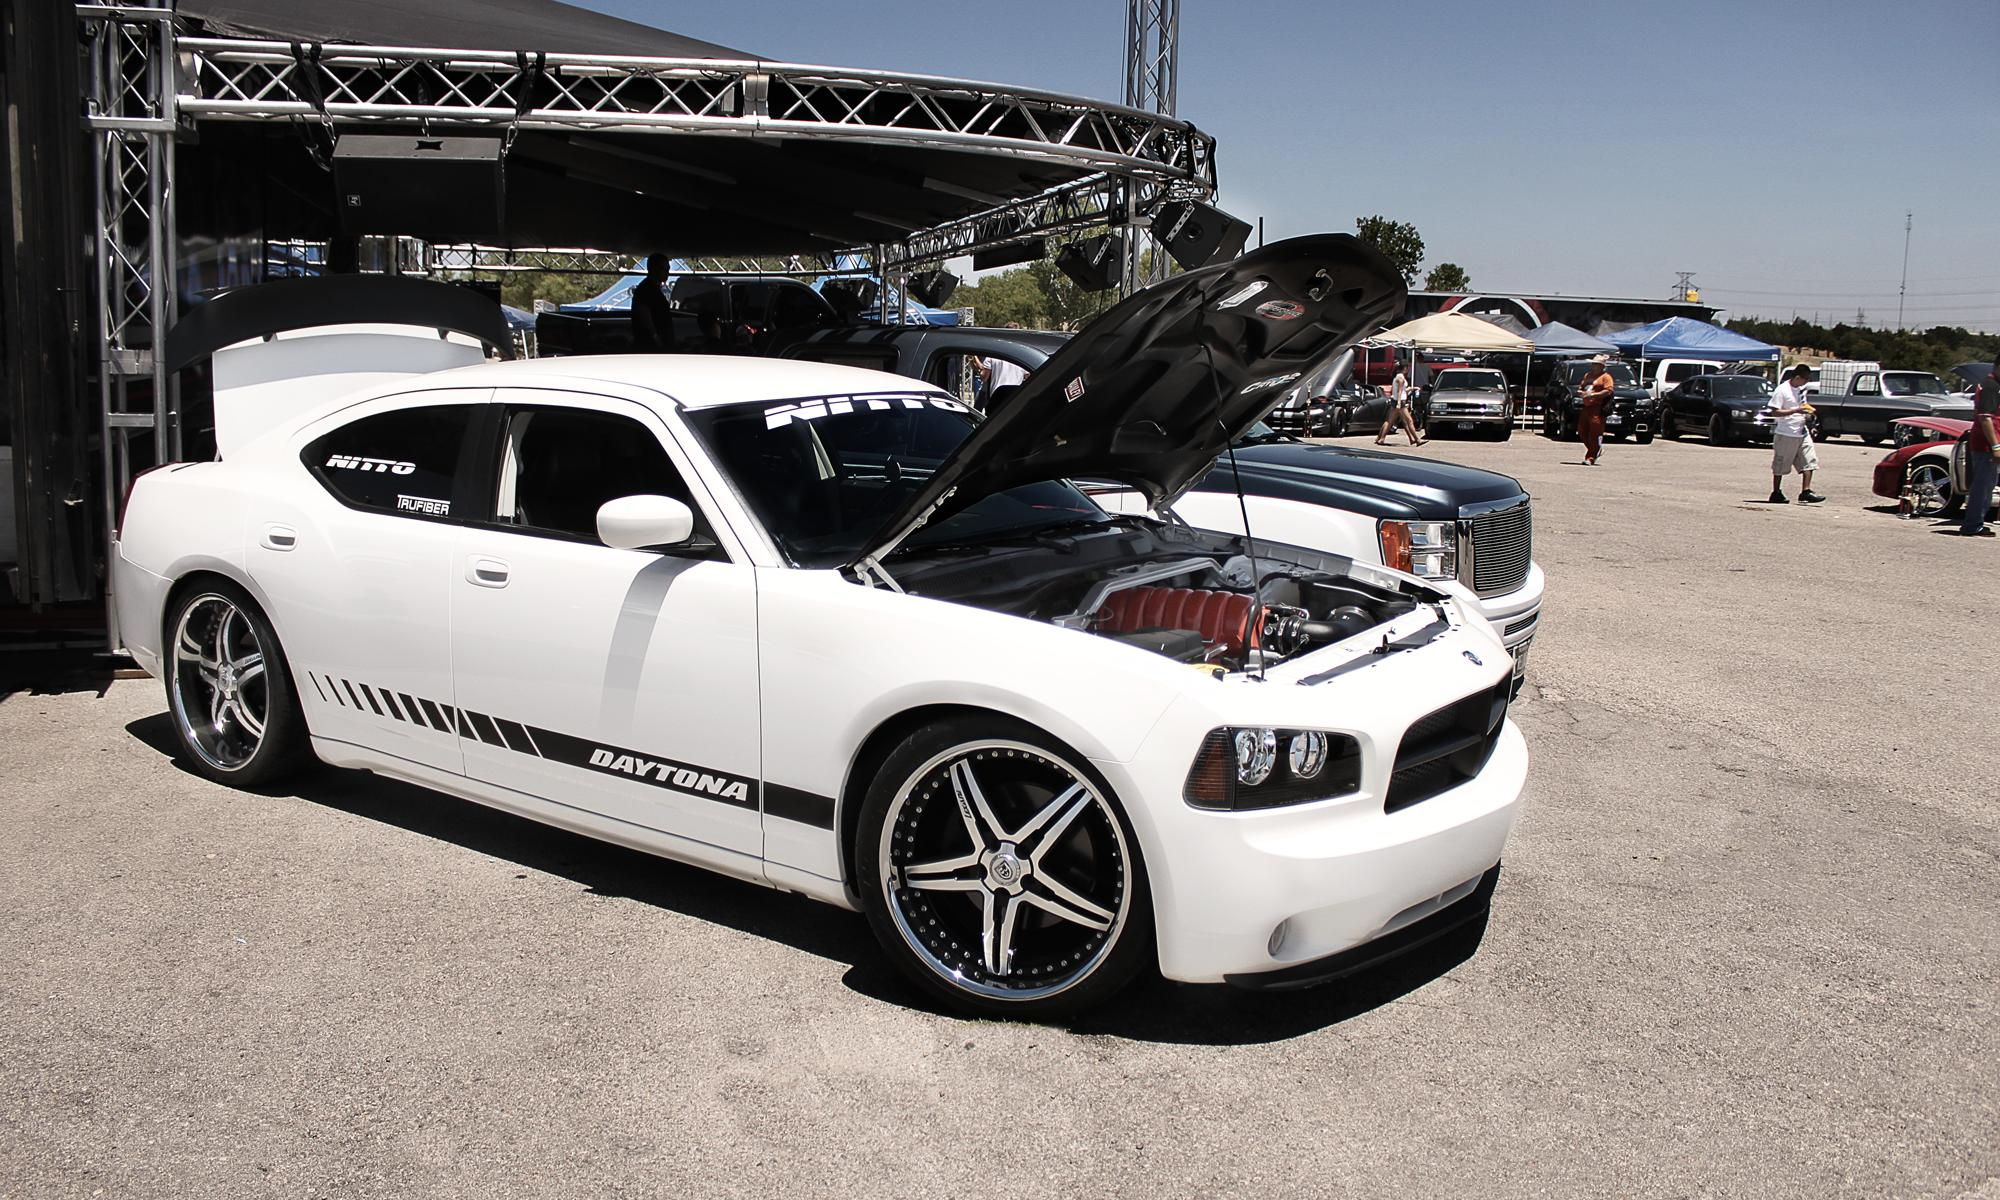 DODGE CHARGER white